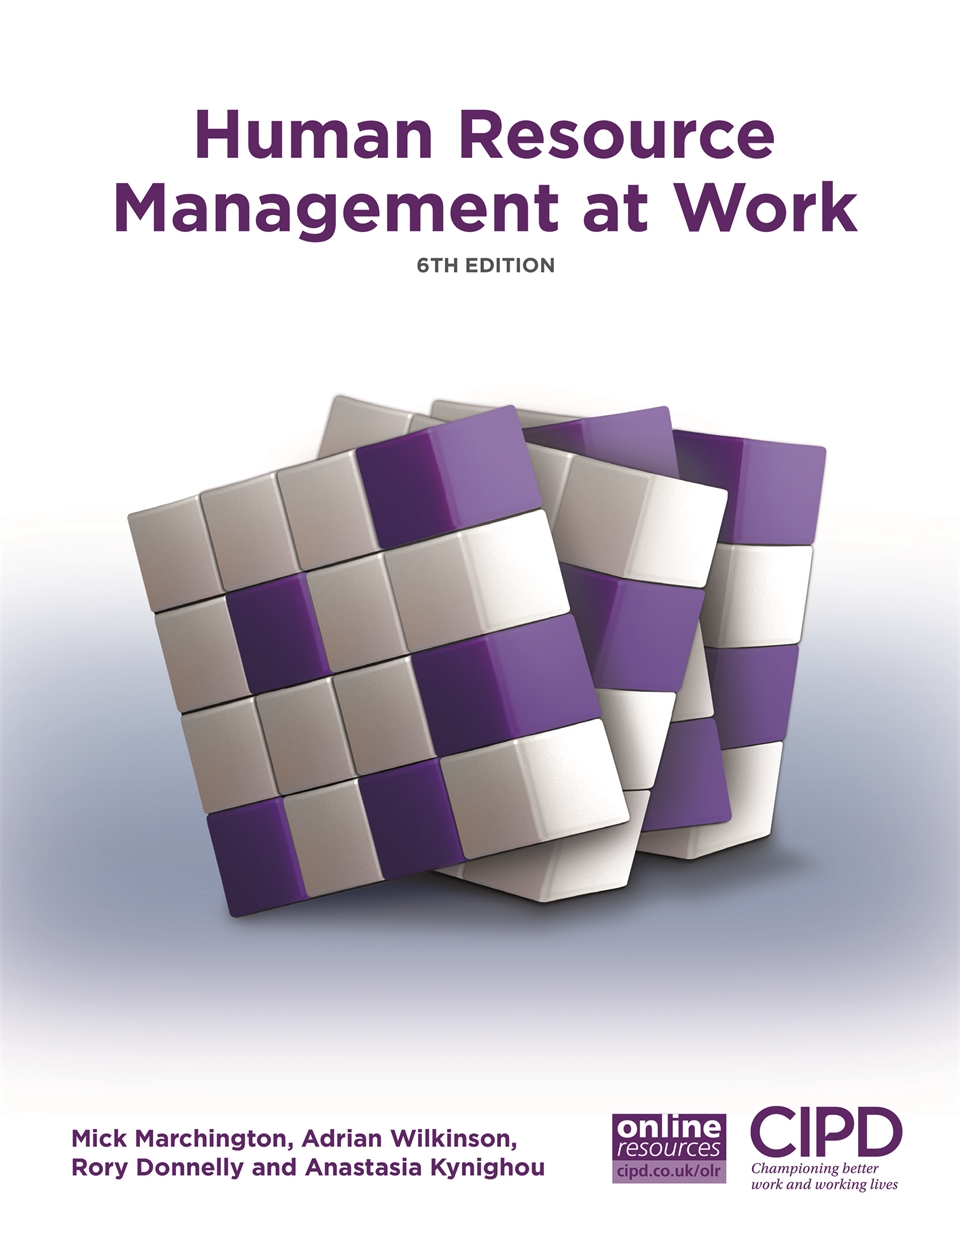 Human Resource Management at Work (9781843983712)